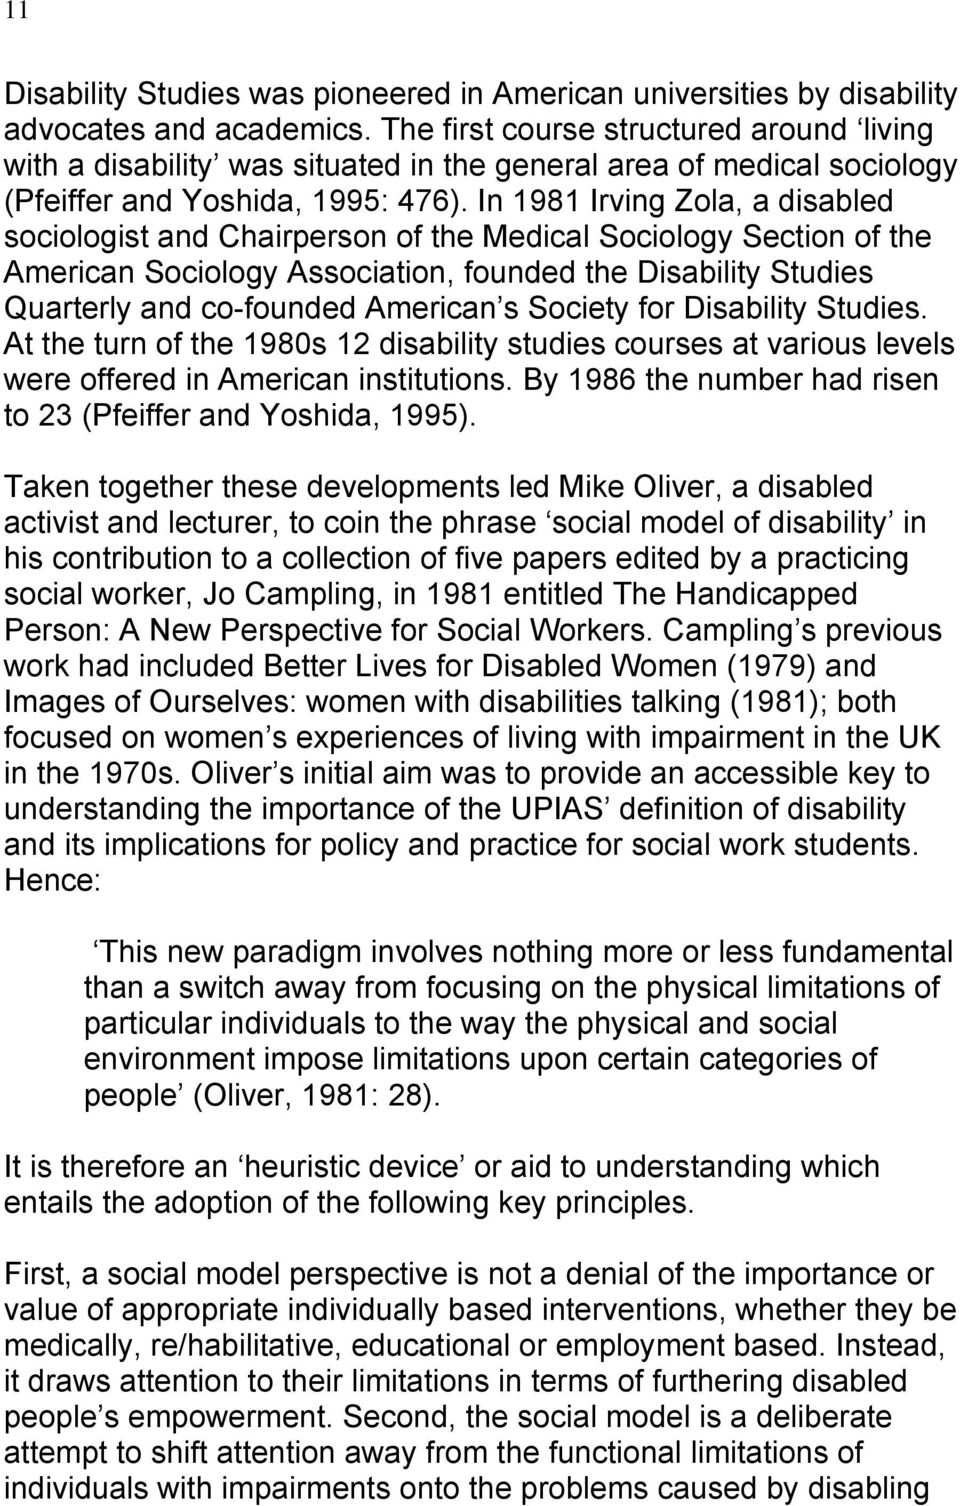 In 1981 Irving Zola, a disabled sociologist and Chairperson of the Medical Sociology Section of the American Sociology Association, founded the Disability Studies Quarterly and co-founded American s